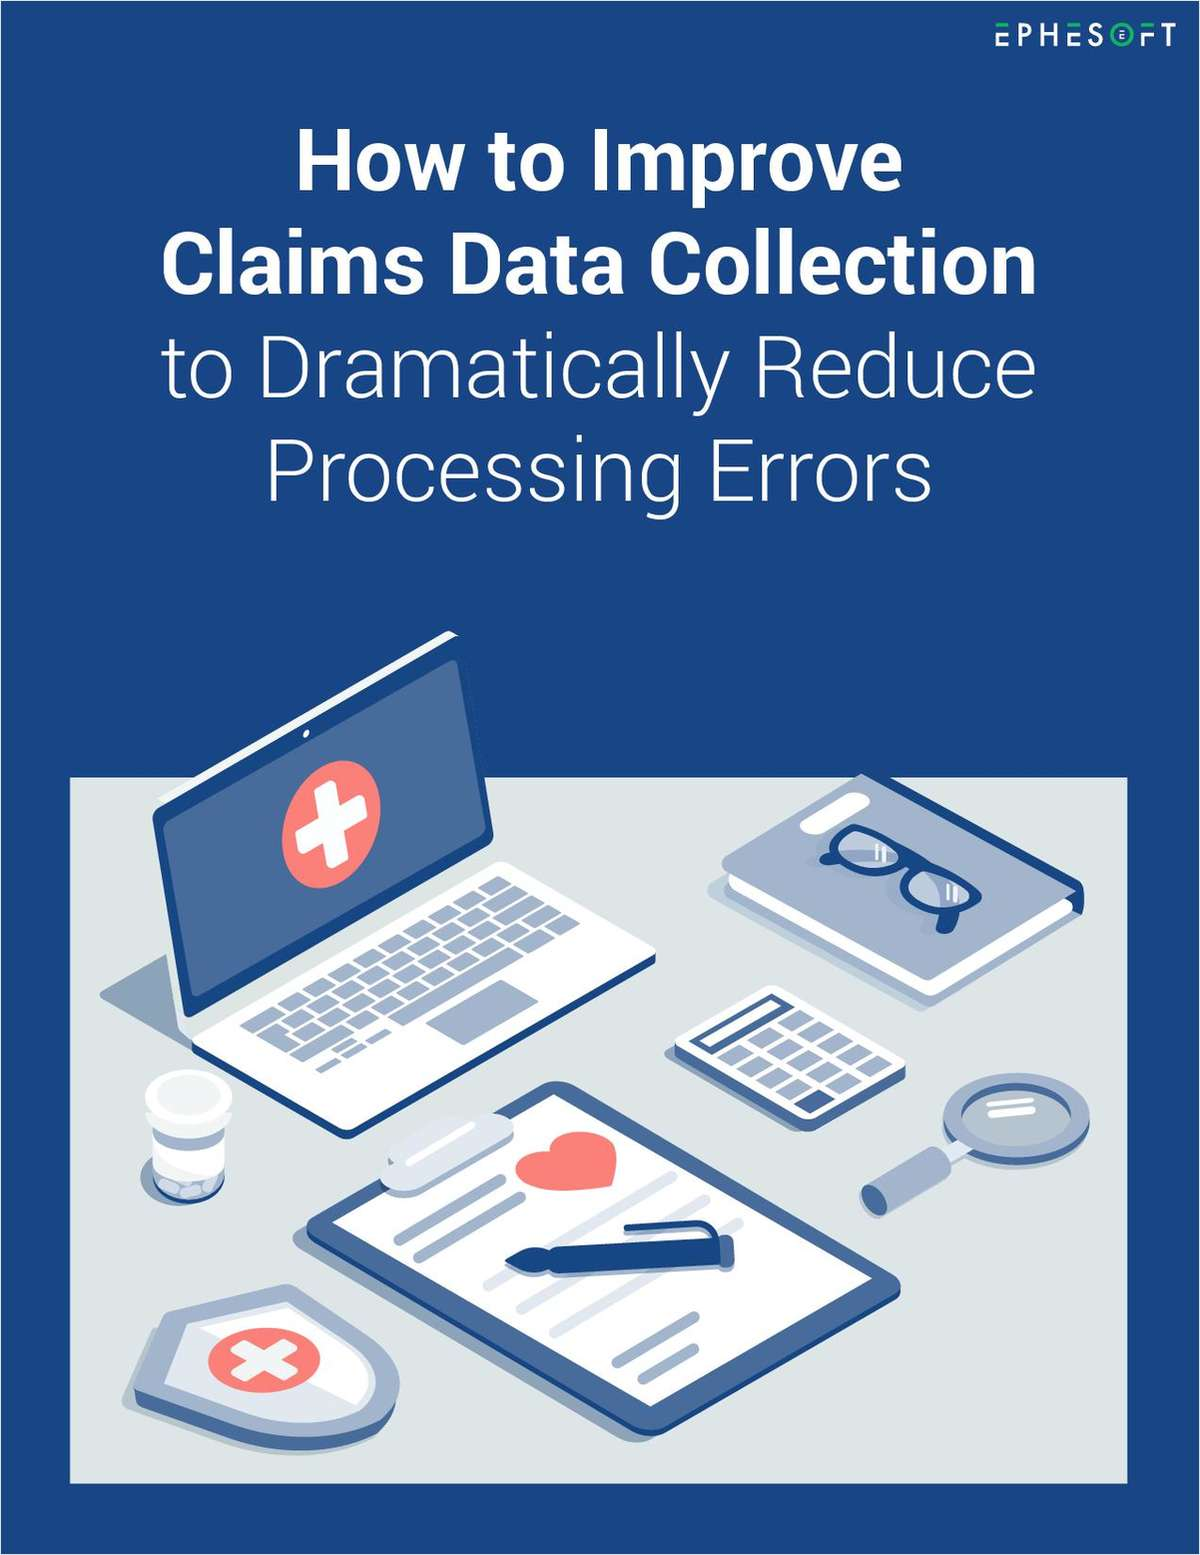 Digital Transformation for Insurance Claims Processing